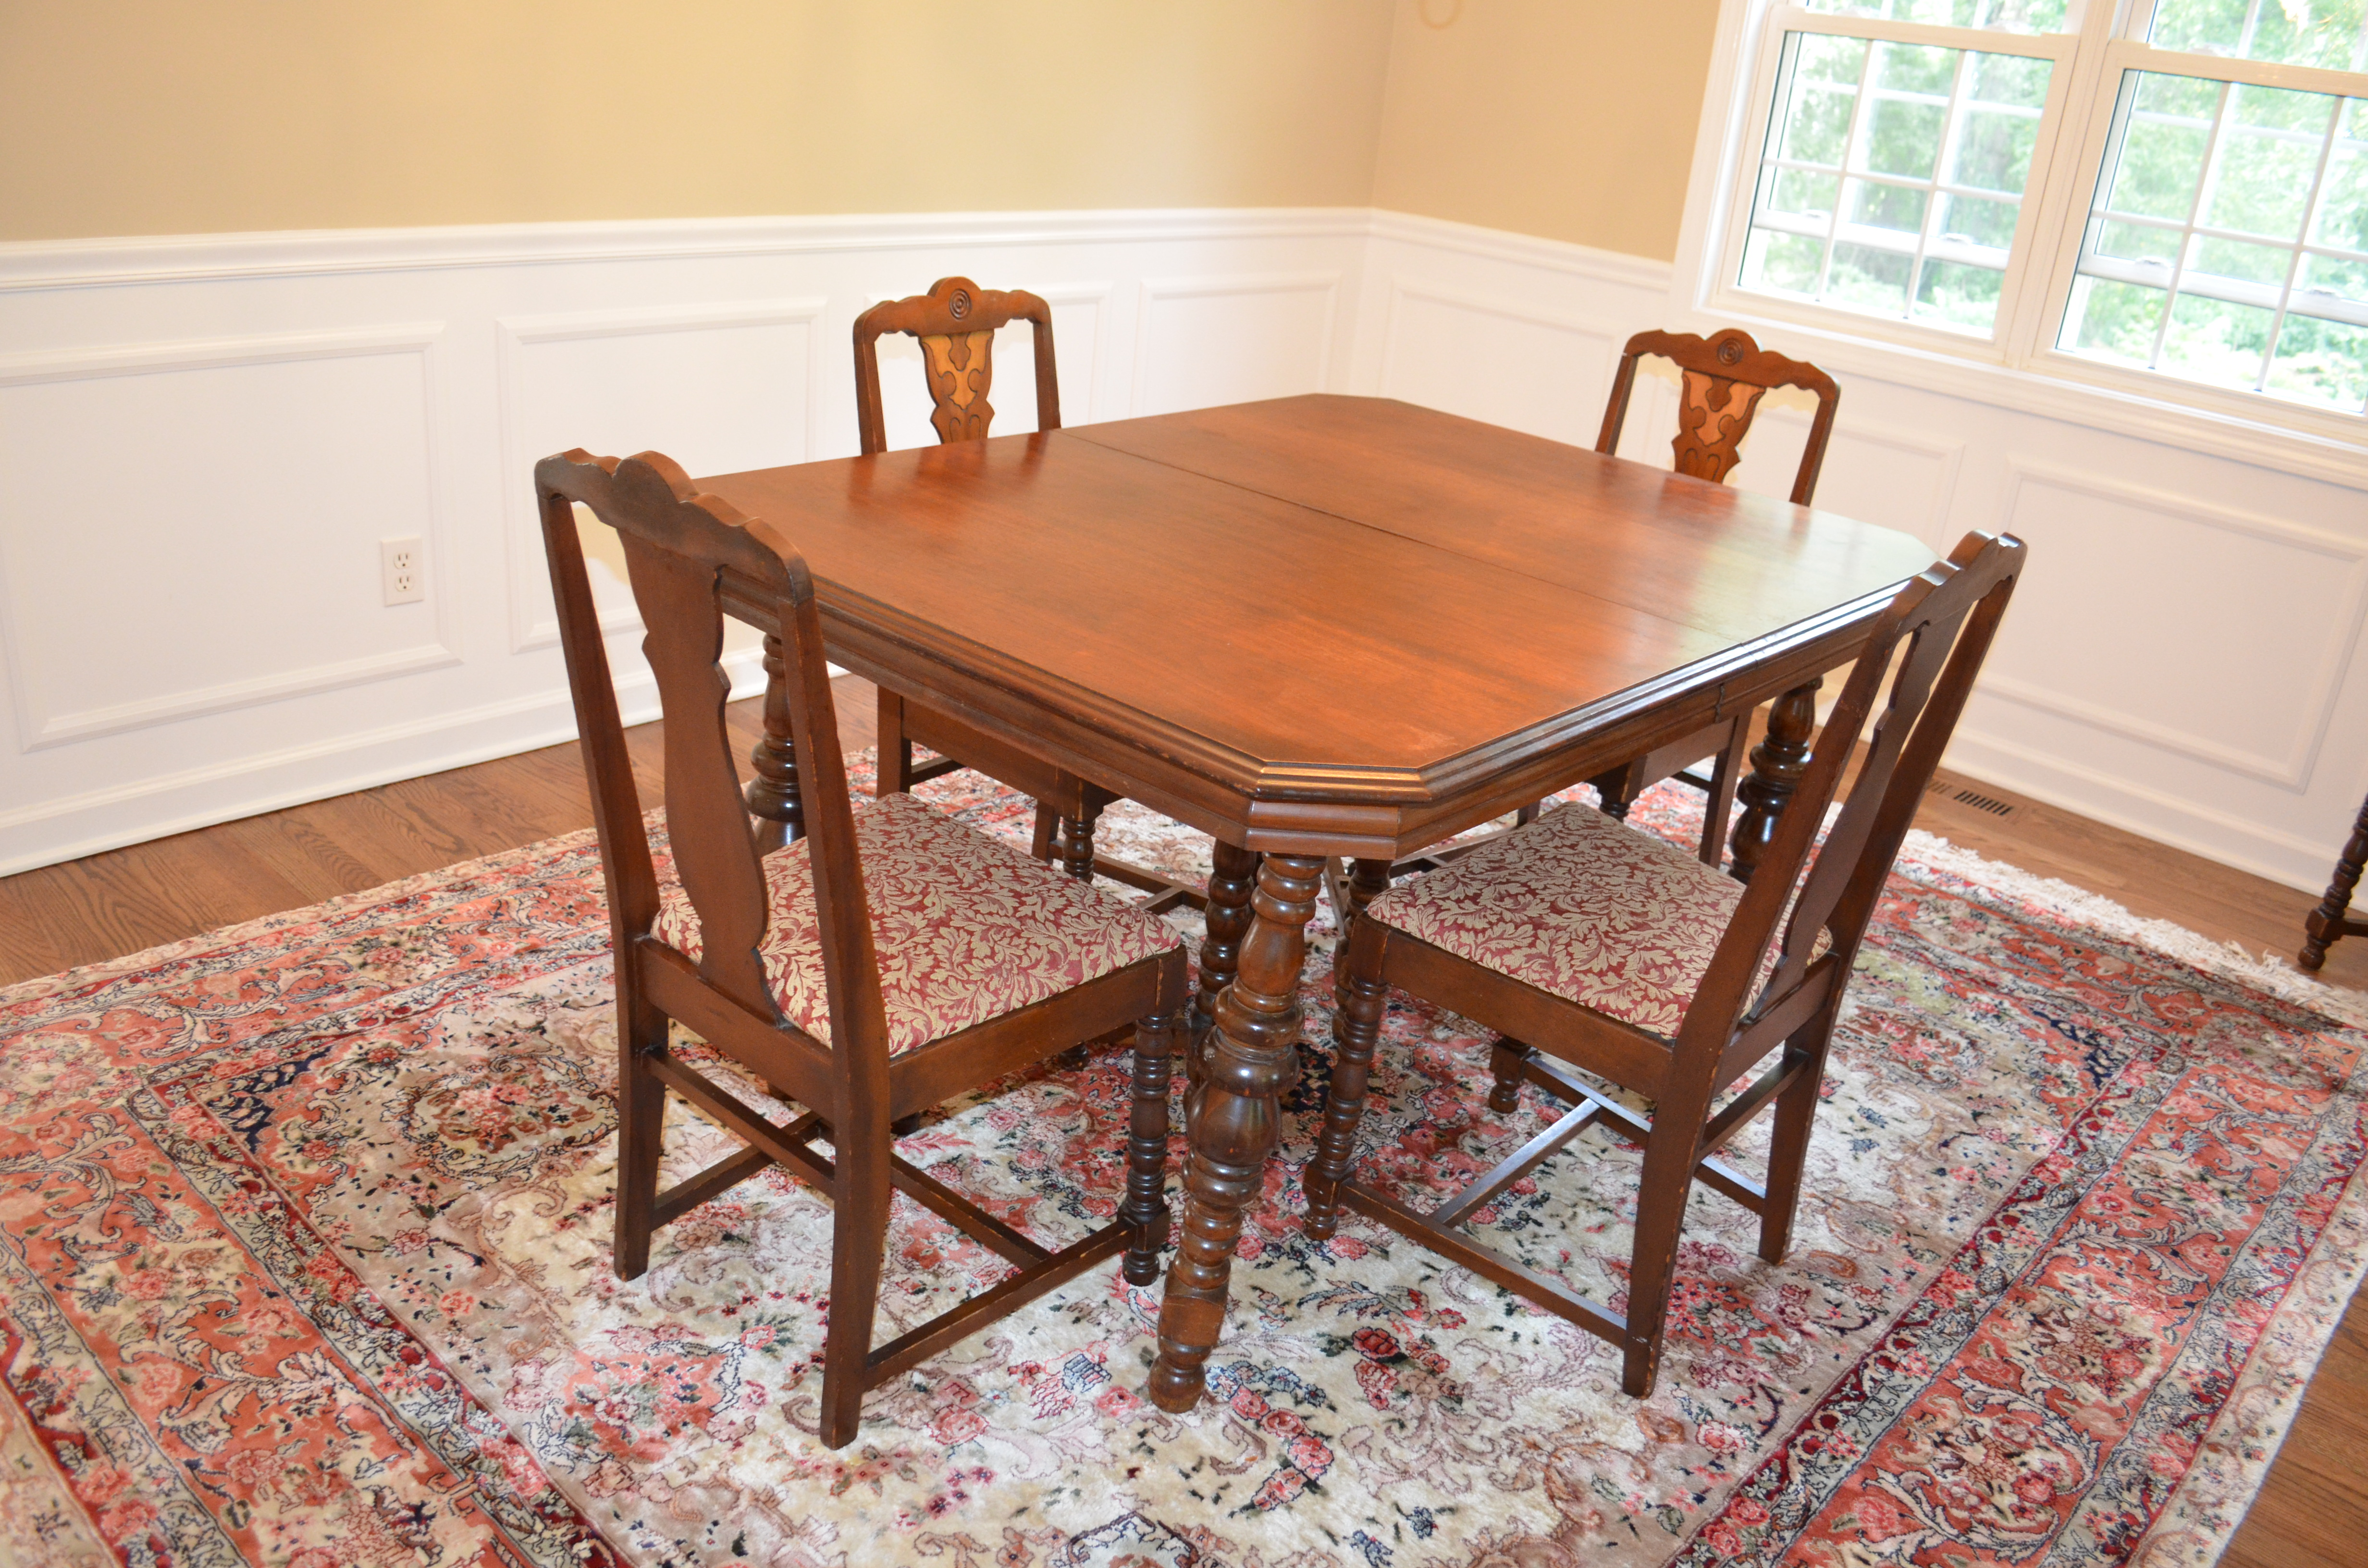 Magnificent 1920S Dining Room Set Antique Appraisal Instappraisal Cjindustries Chair Design For Home Cjindustriesco